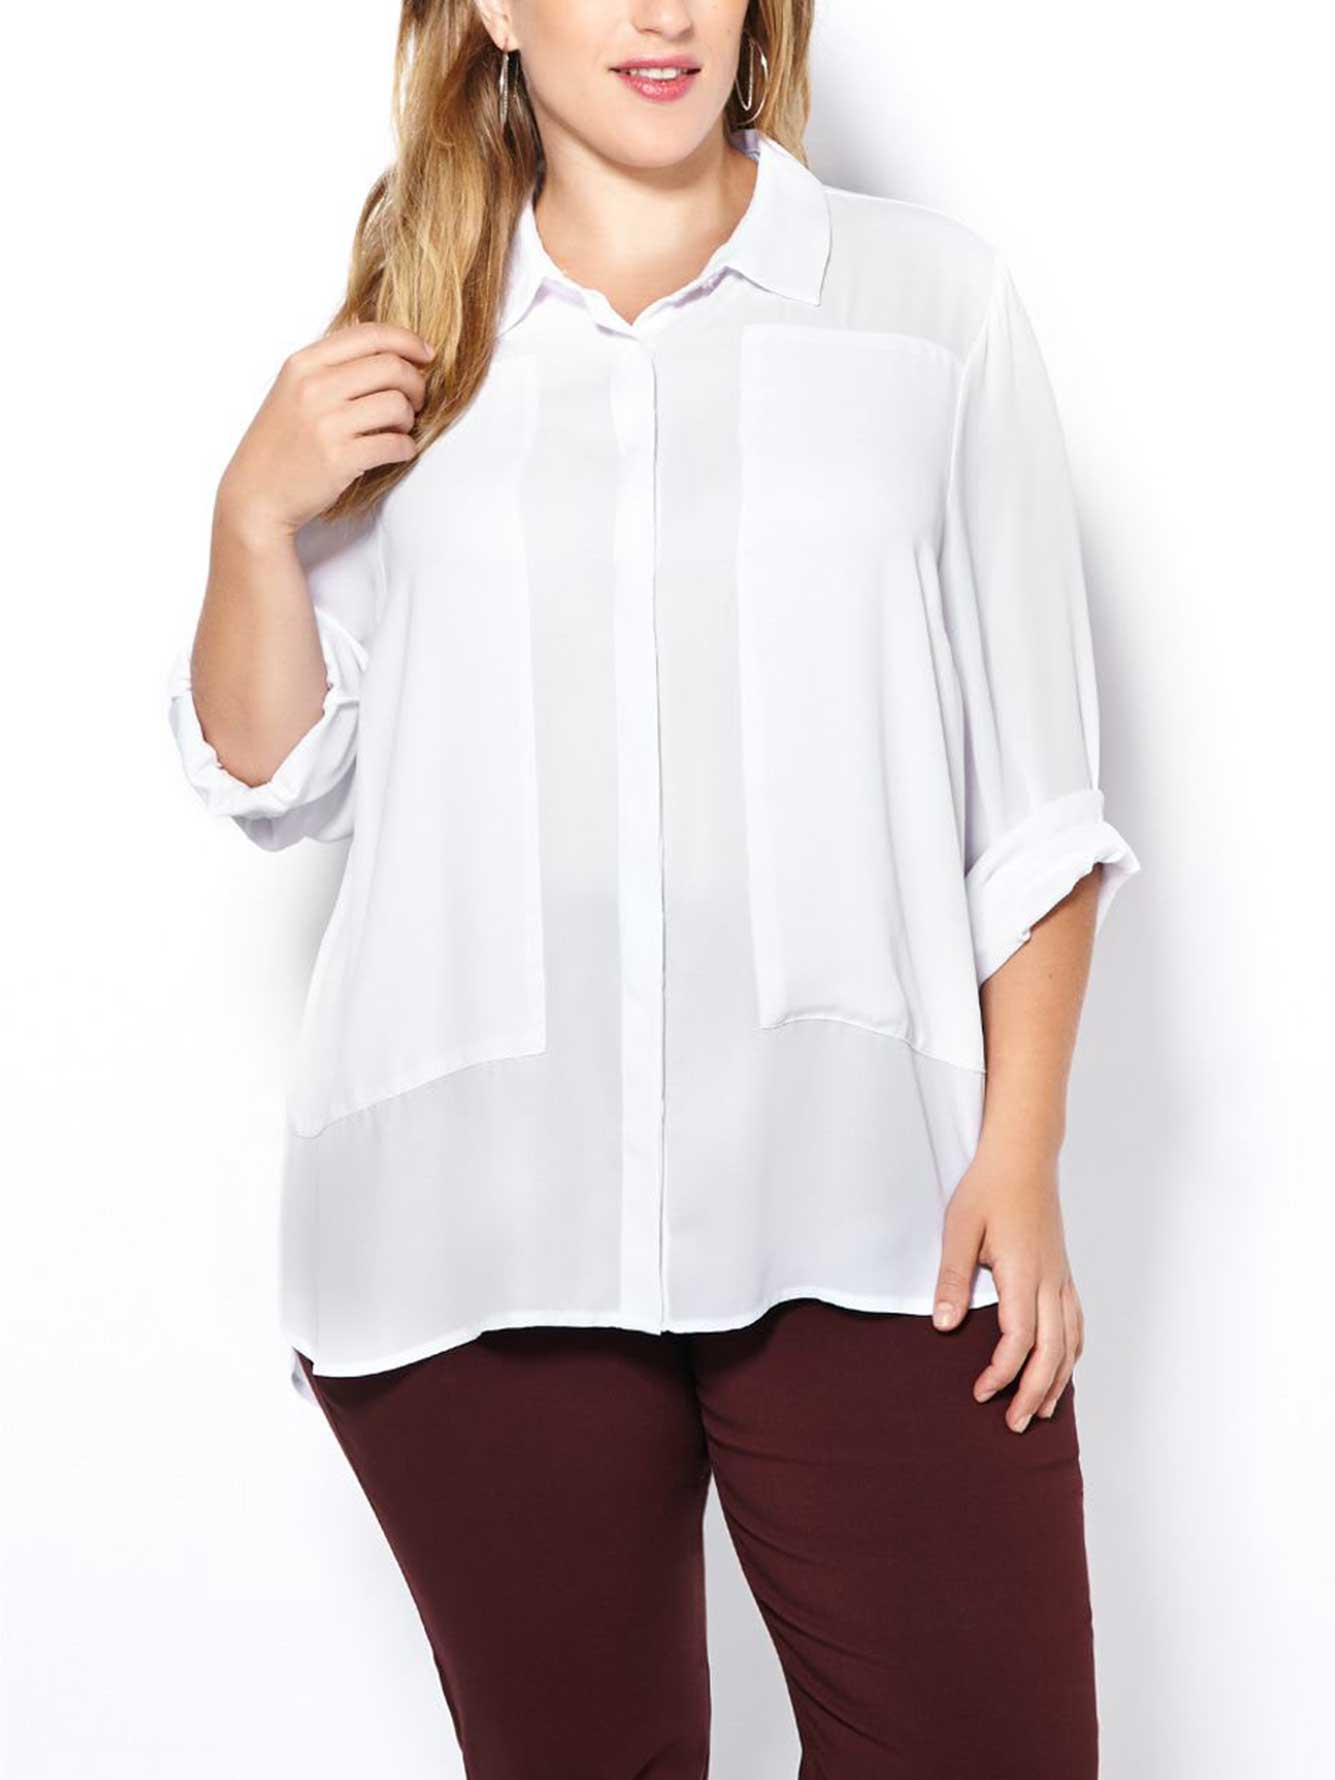 Find great deals on eBay for button up blouse. Shop with confidence.